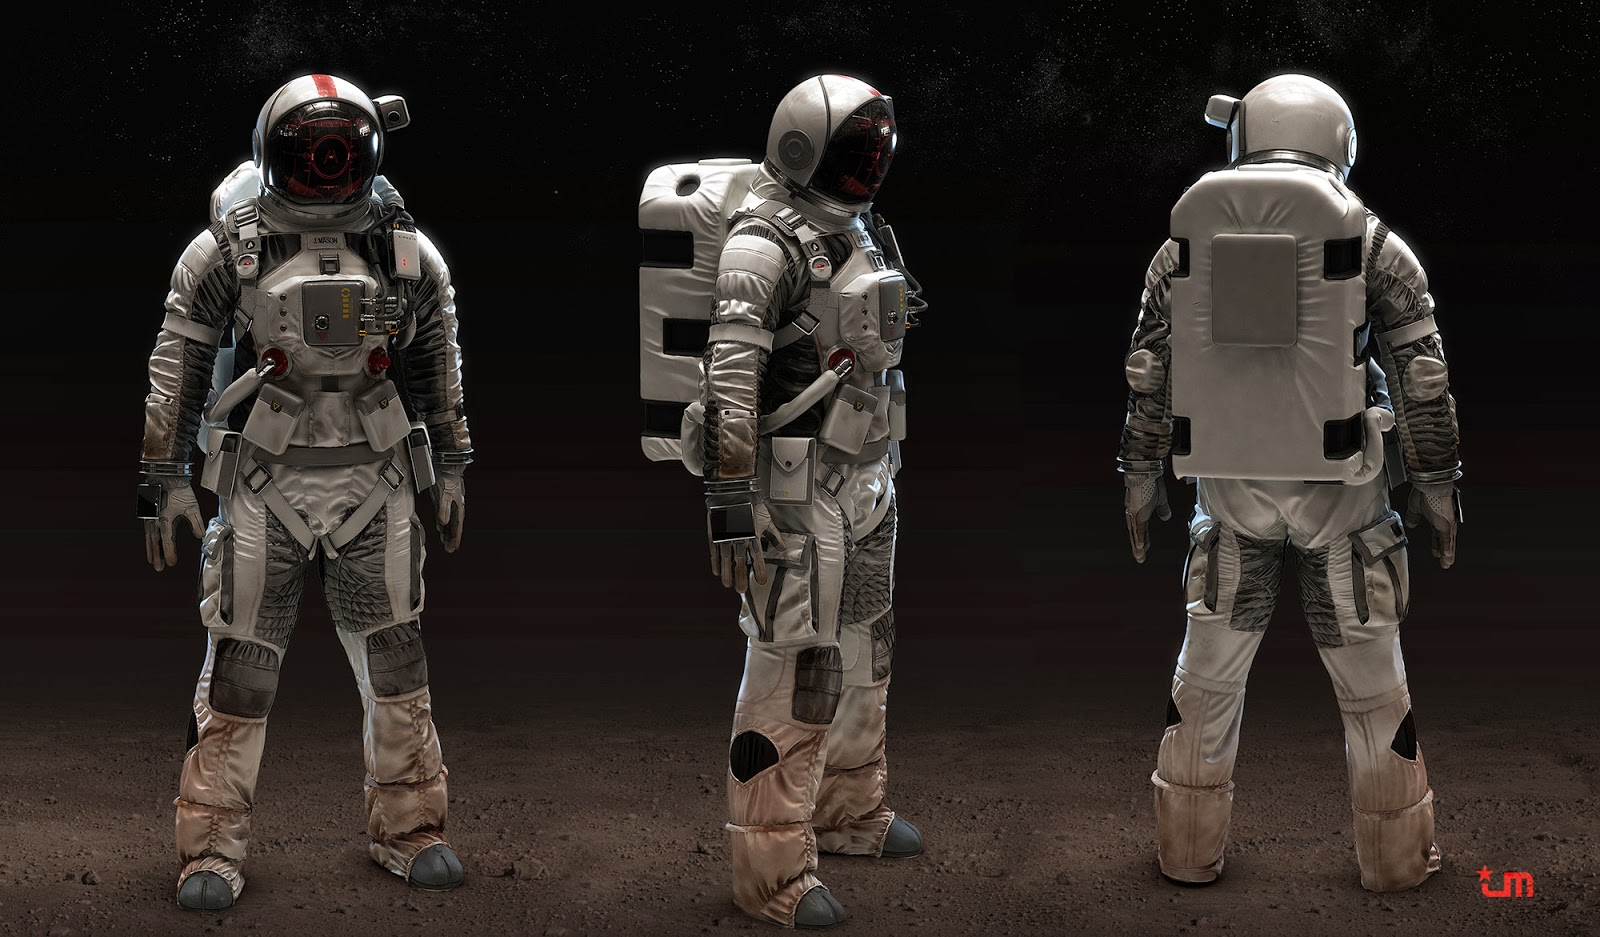 Astronaut by jeff miller cg daily news for Space designers